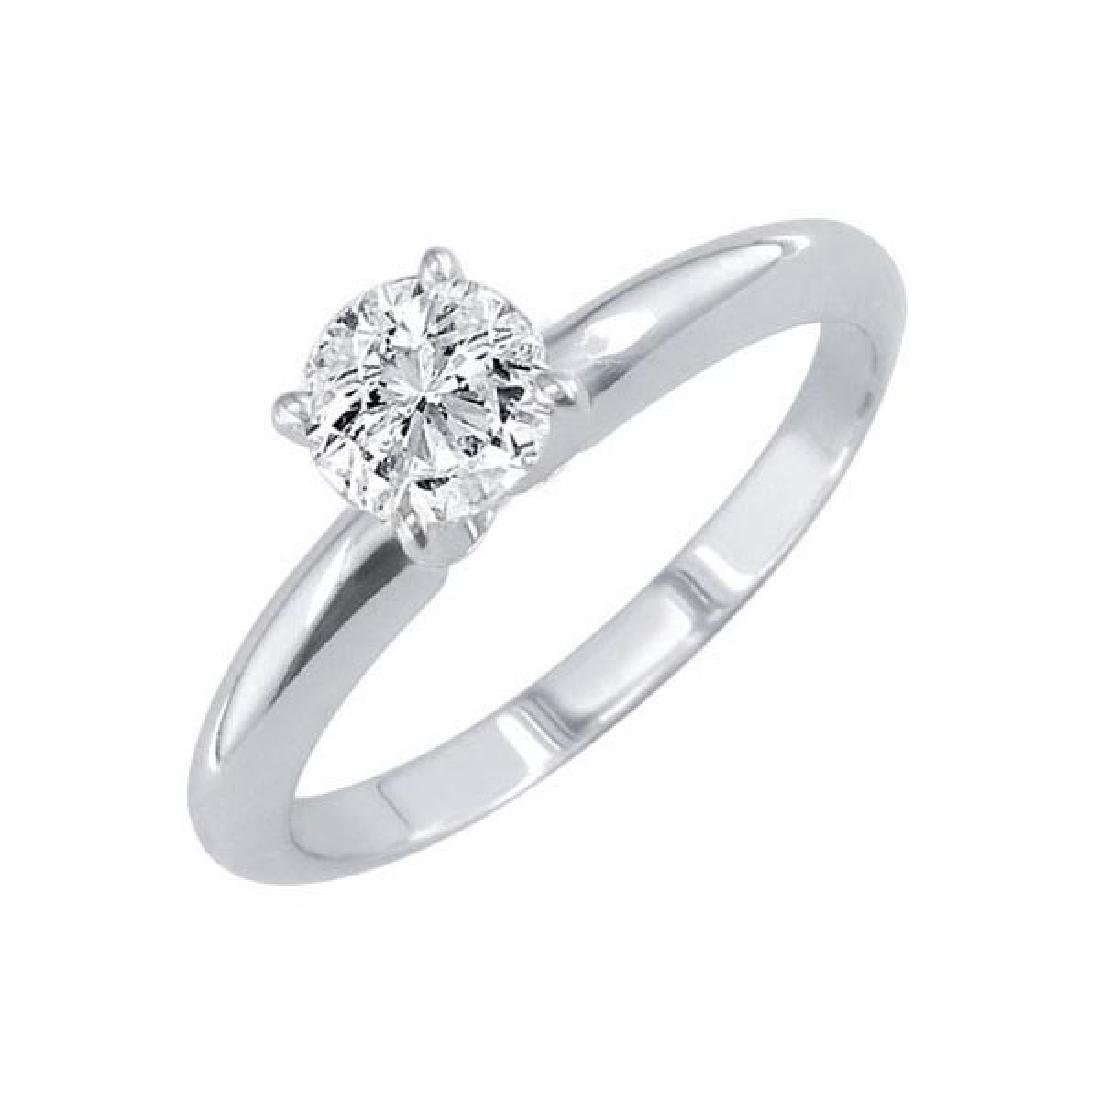 Certified 0.94 CTW Round Diamond Solitaire 14k Ring F/S